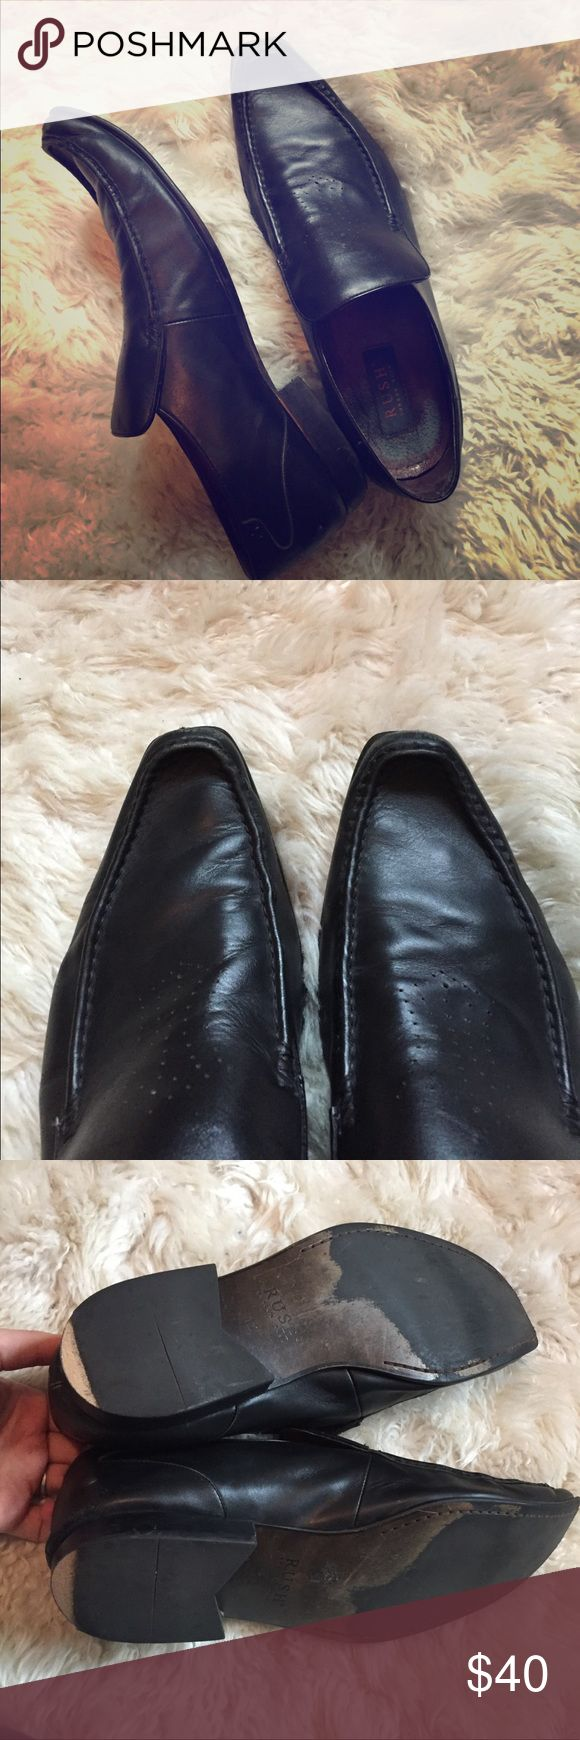 Gordon Rush 12 MENS slip on loafers Worn good shape, needs some sole work (heels) but actually sole itself in good shape as is leather and overall nicely worn in but still great. Gordon Rush Shoes Loafers & Slip-Ons